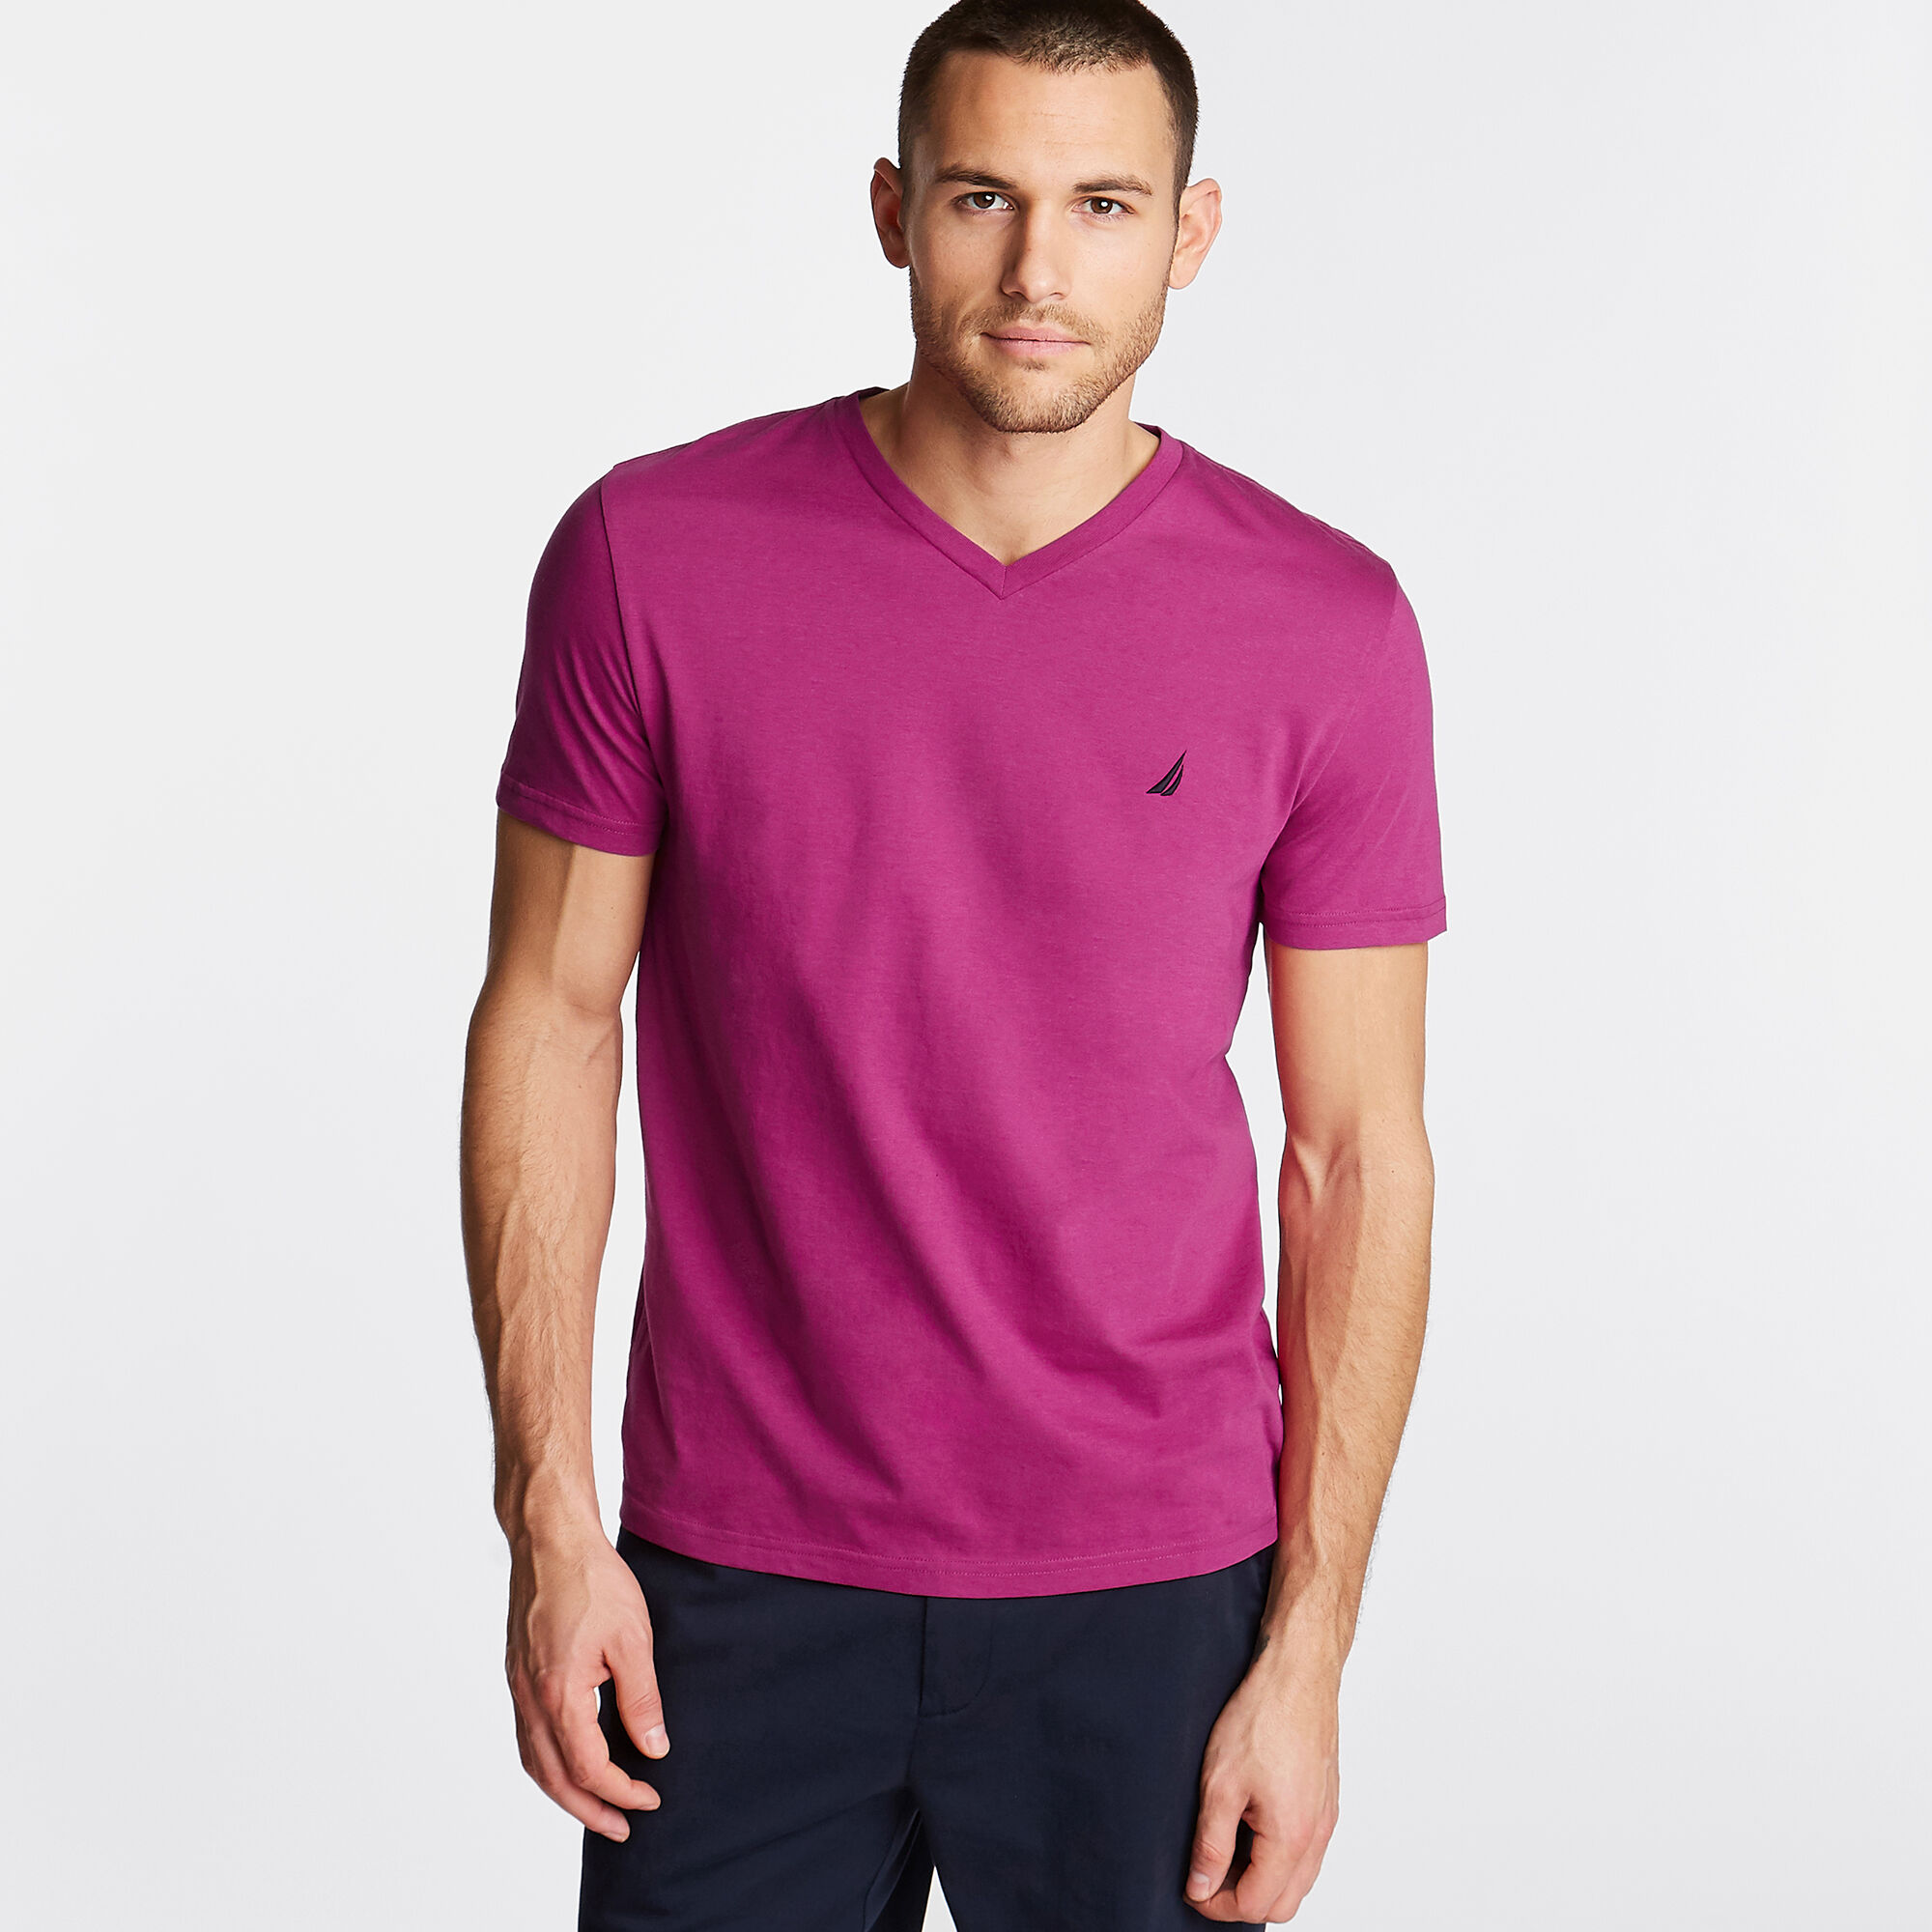 Nautica-Mens-V-Neck-Short-Sleeve-T-Shirt thumbnail 11